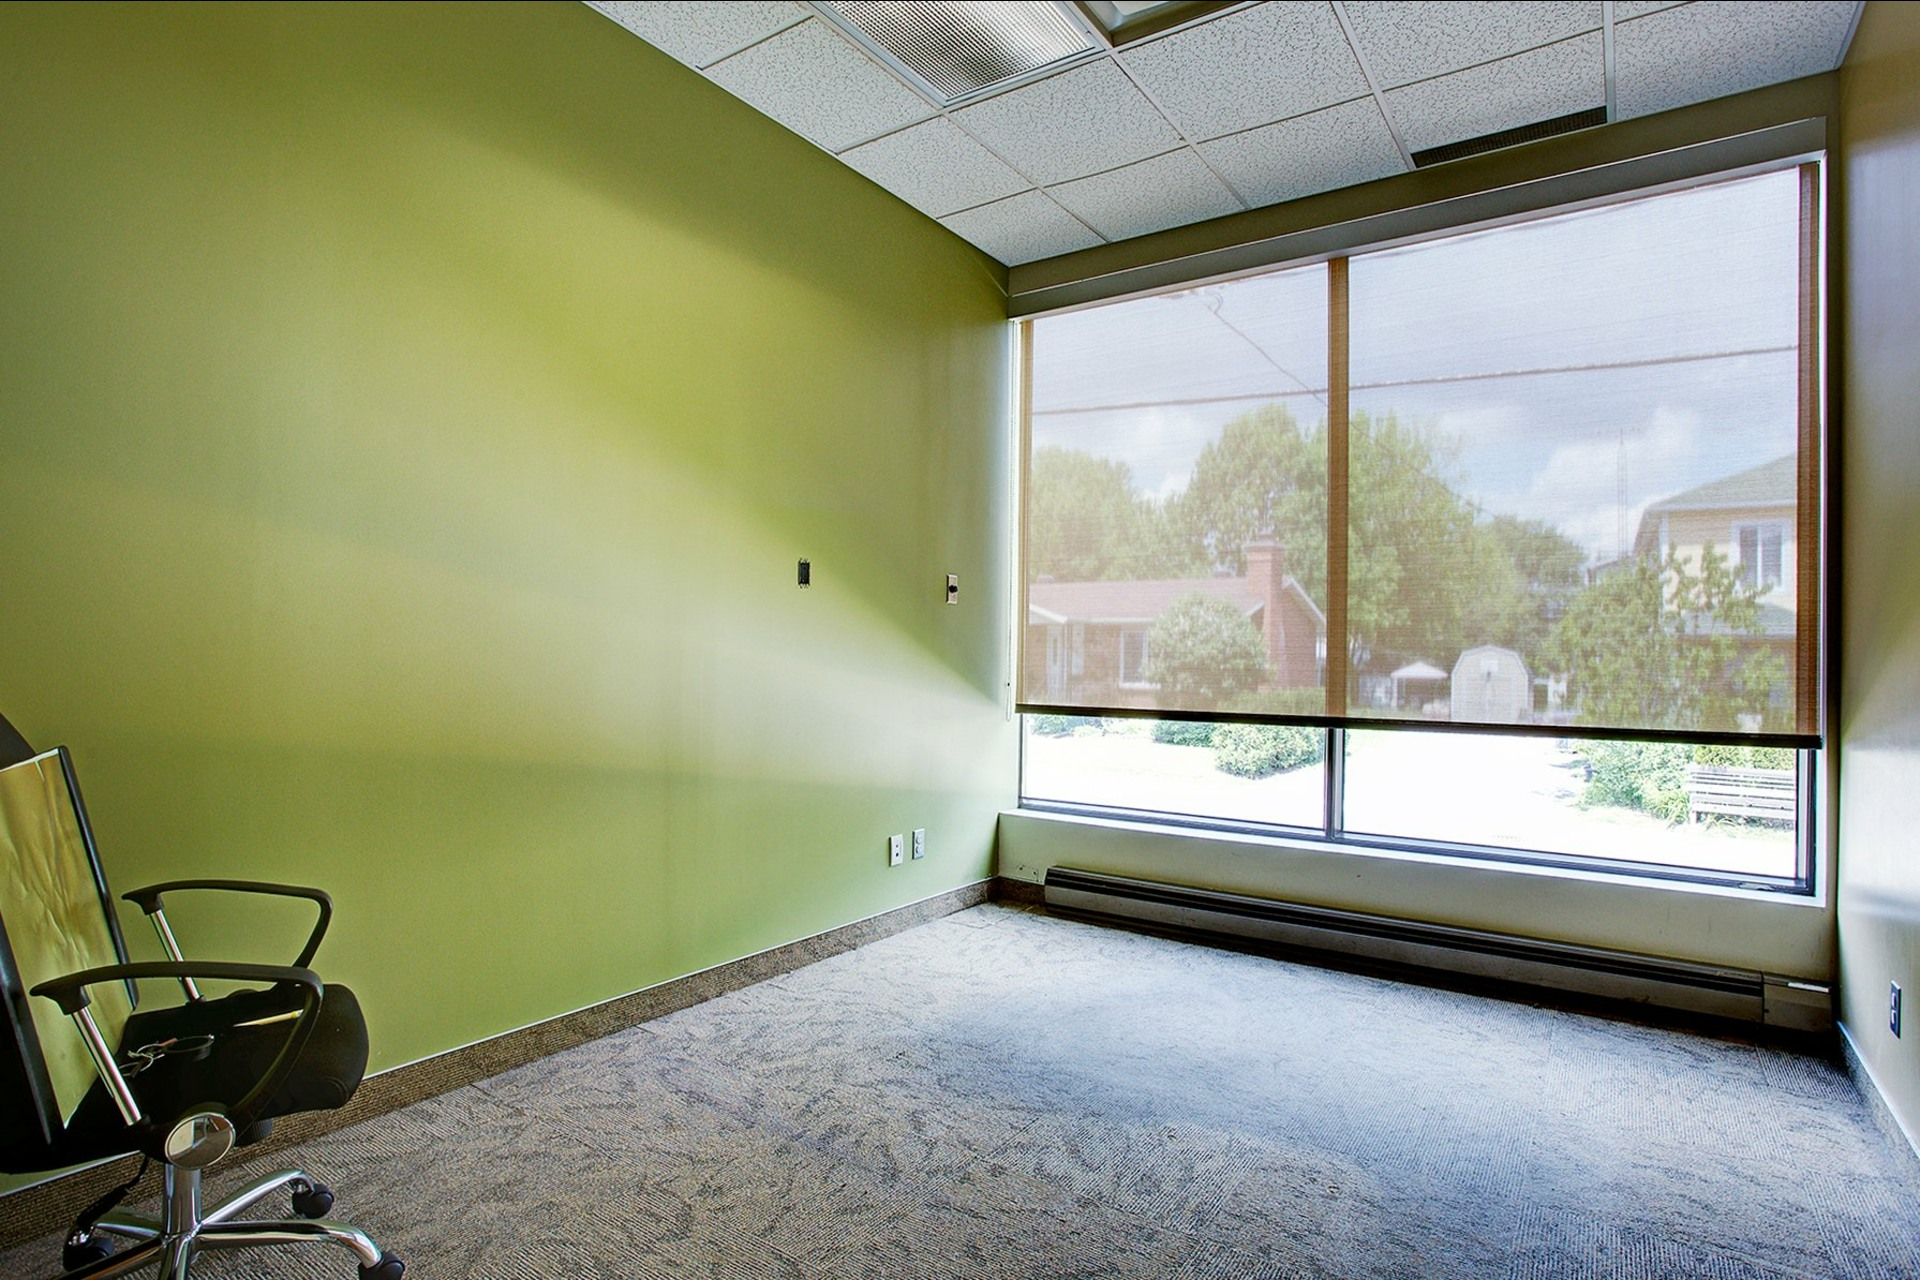 image 10 - Office For rent Rigaud